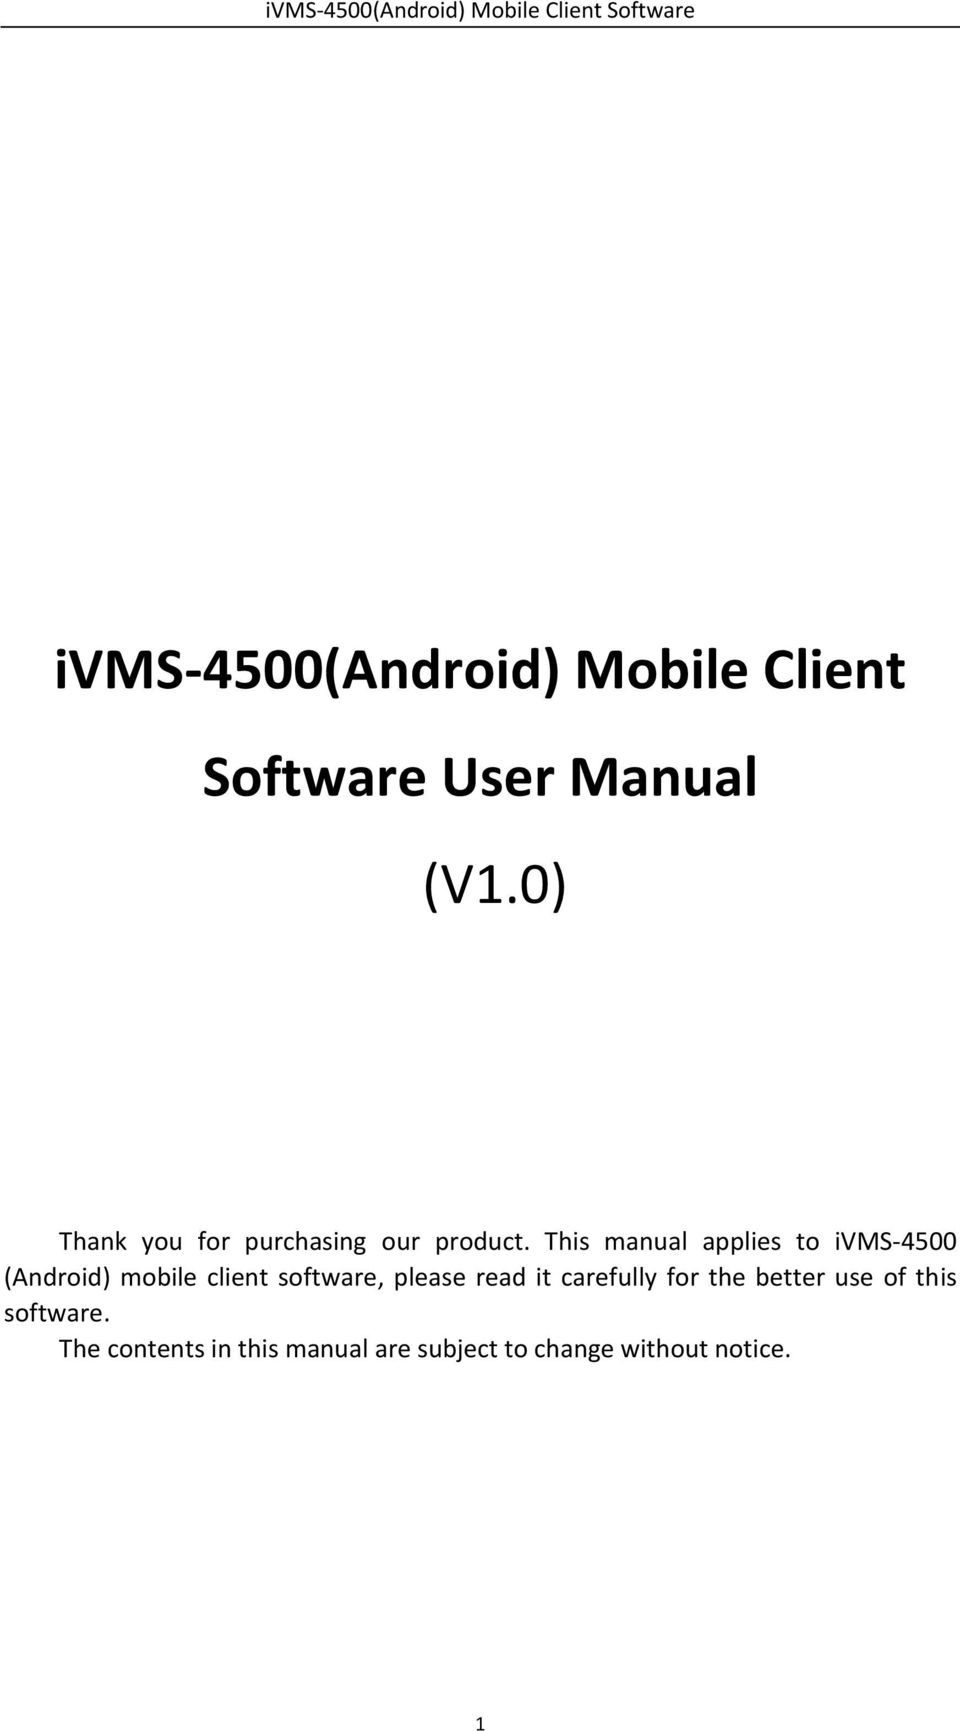 This manual applies to ivms-4500 (Android) mobile client software, please